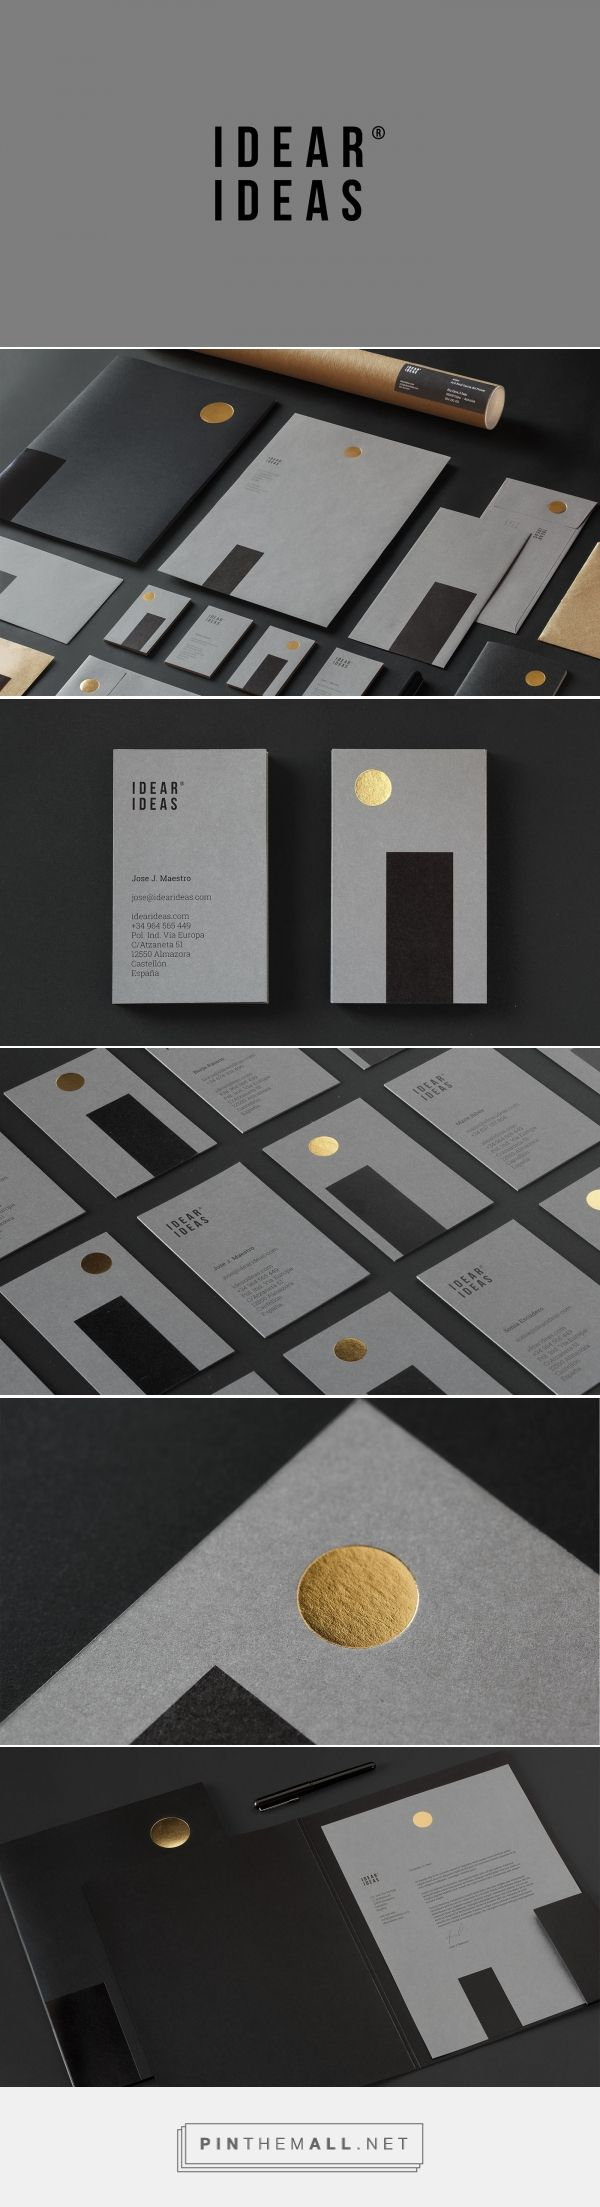 Idear Ideas Branding on Behance | Fivestar Branding – Design and Branding Agency…